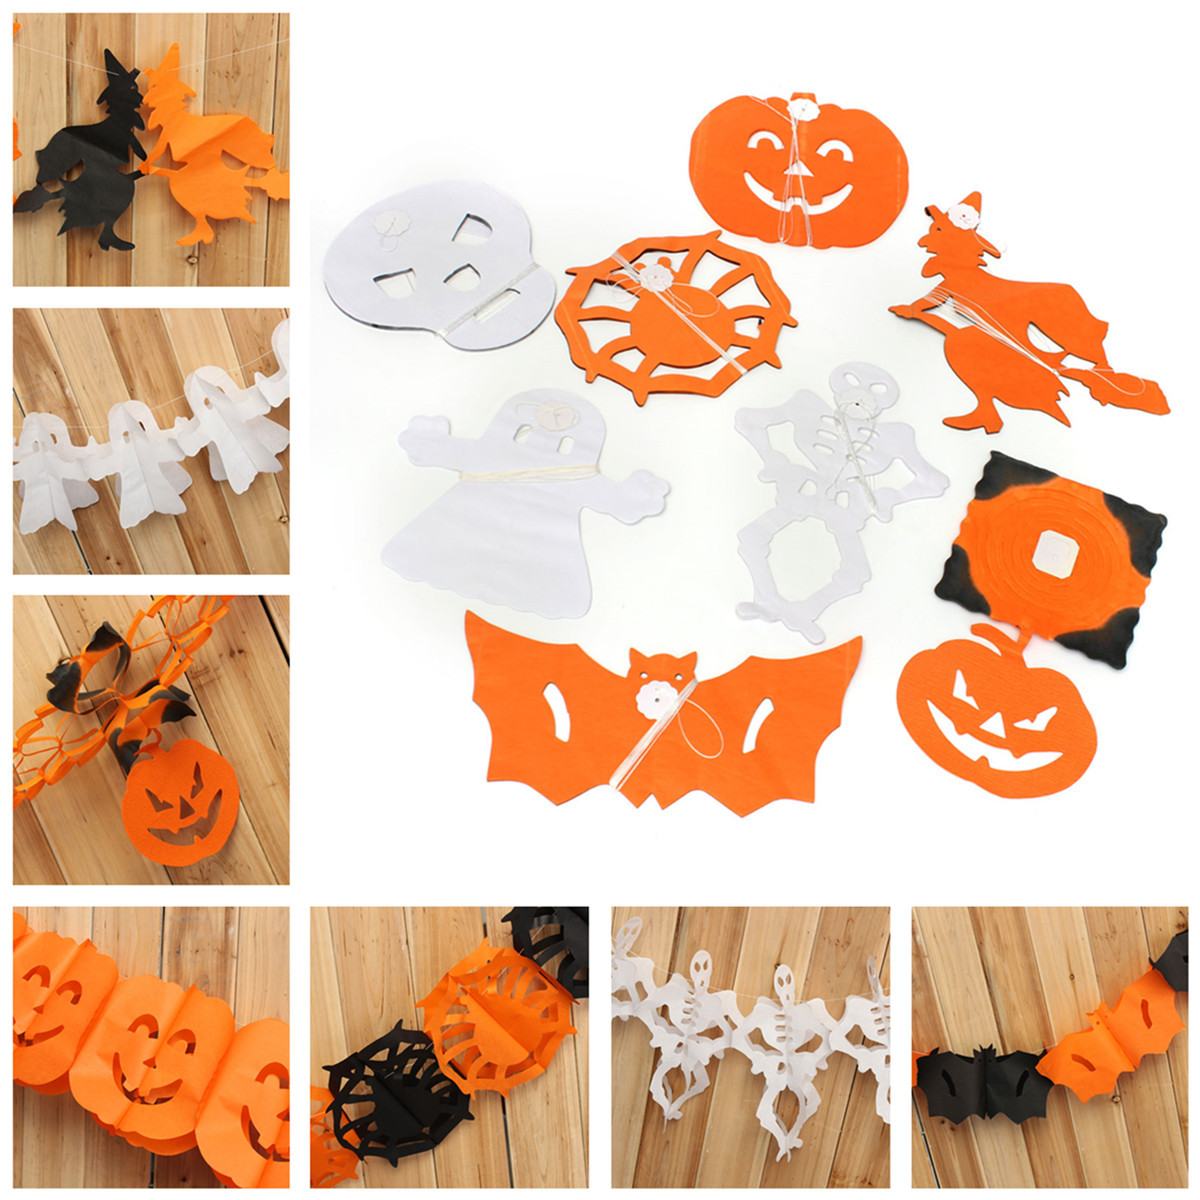 8 Styles Halloween Paper Garland Home Bar Pub Decorations Props Decal Decor